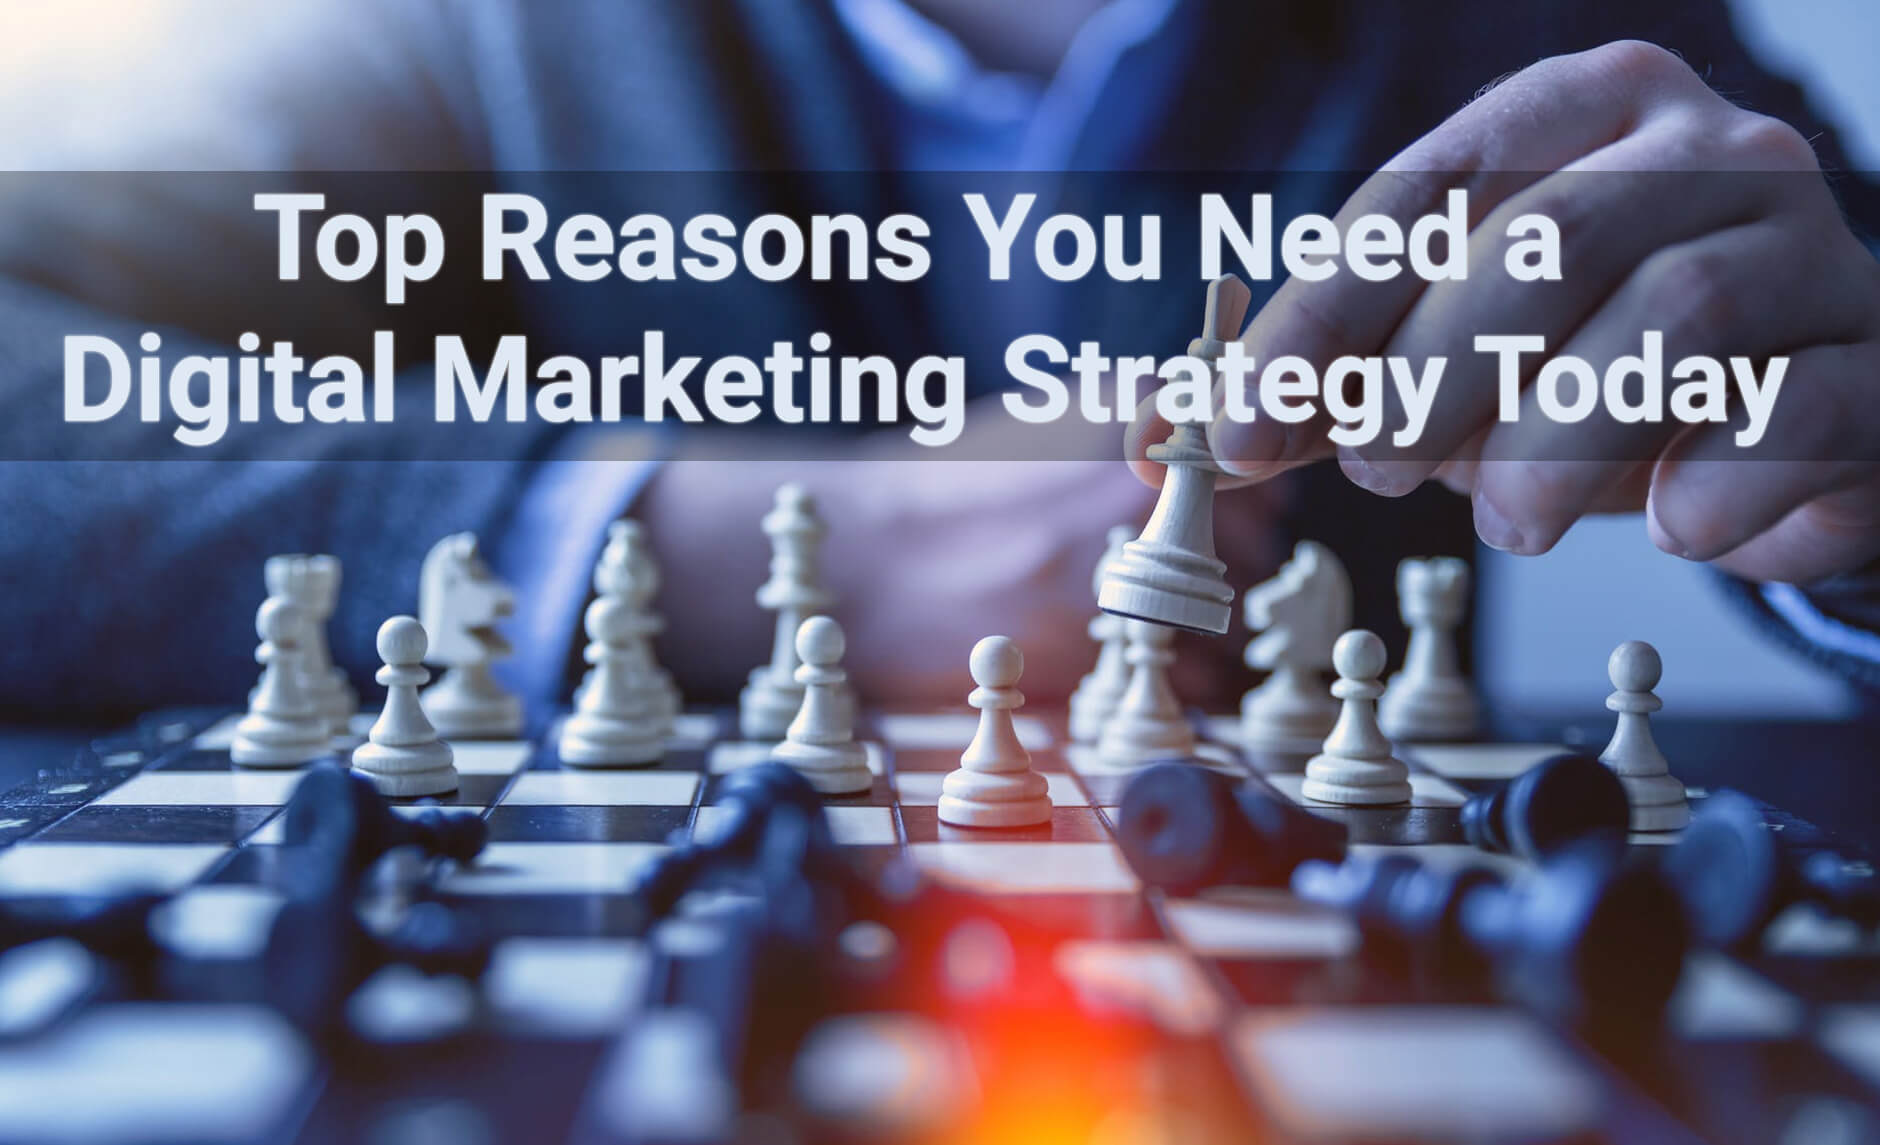 6 unavoidable reasons your business needs a digital marketing strategy in 2019